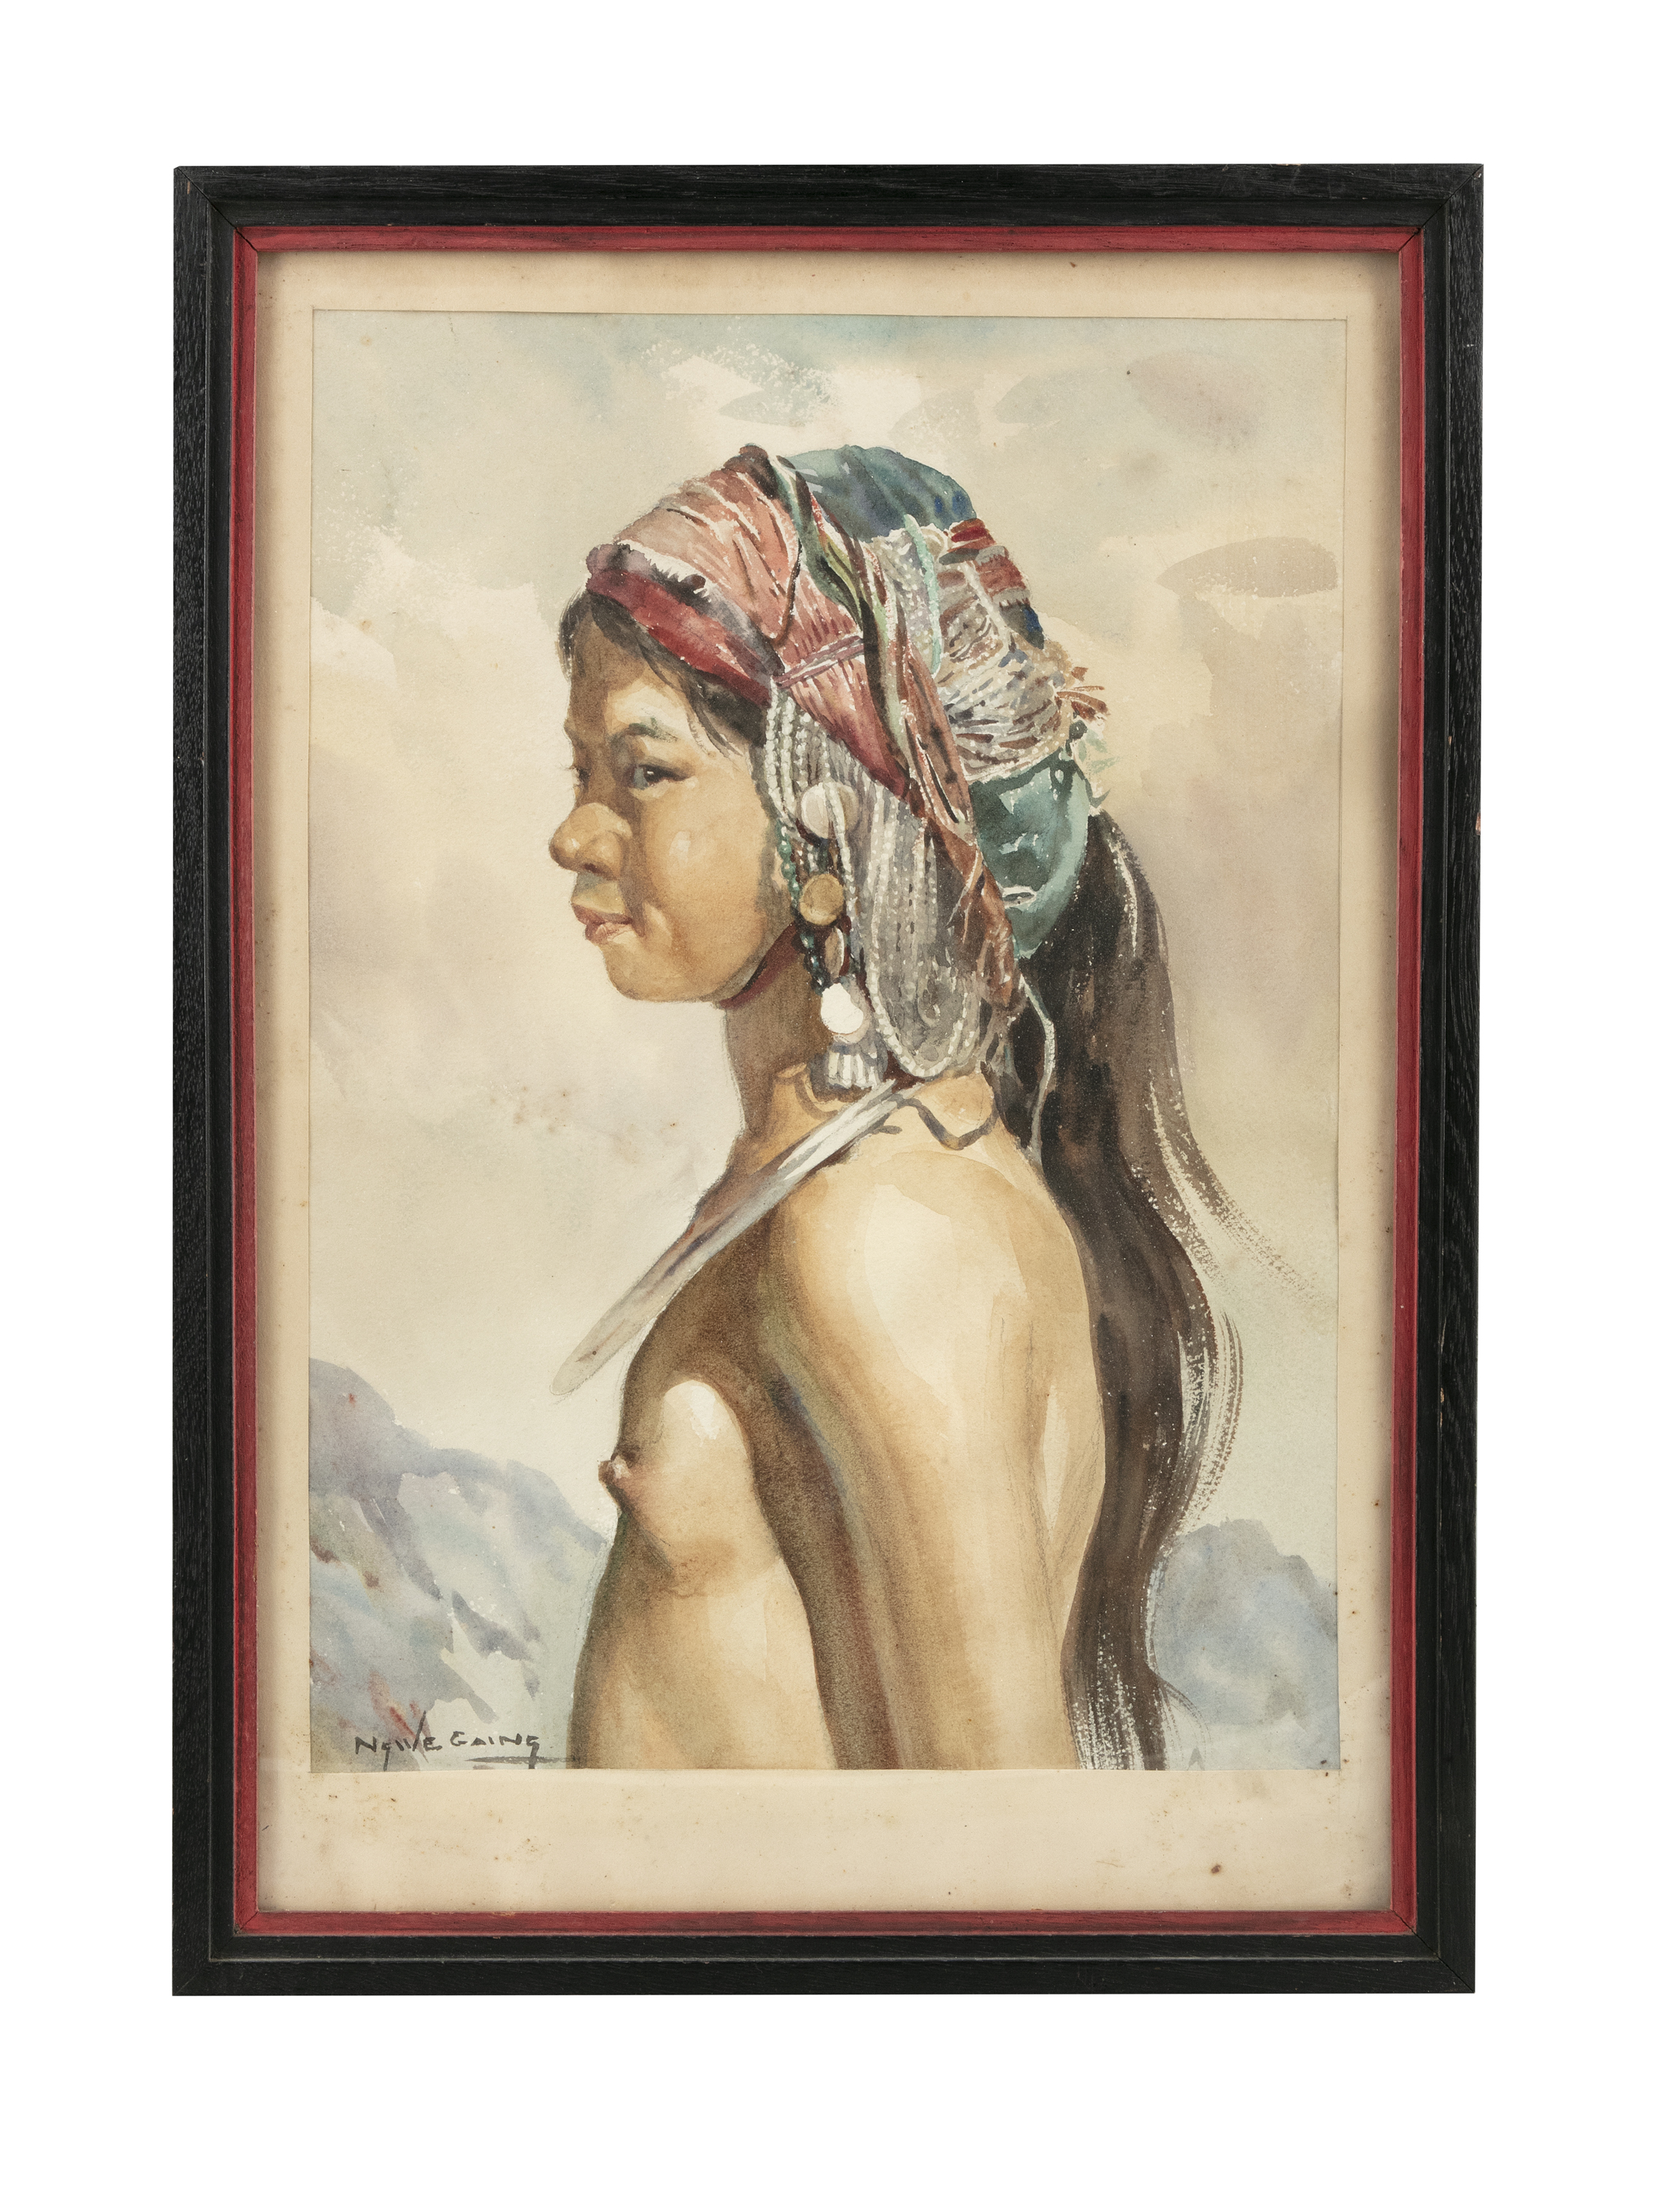 U Ngwe Gaing ငွေကိုင် (1901-1967) Portrait of a young girl from a tribe Mixed media, watercolour - Image 7 of 8